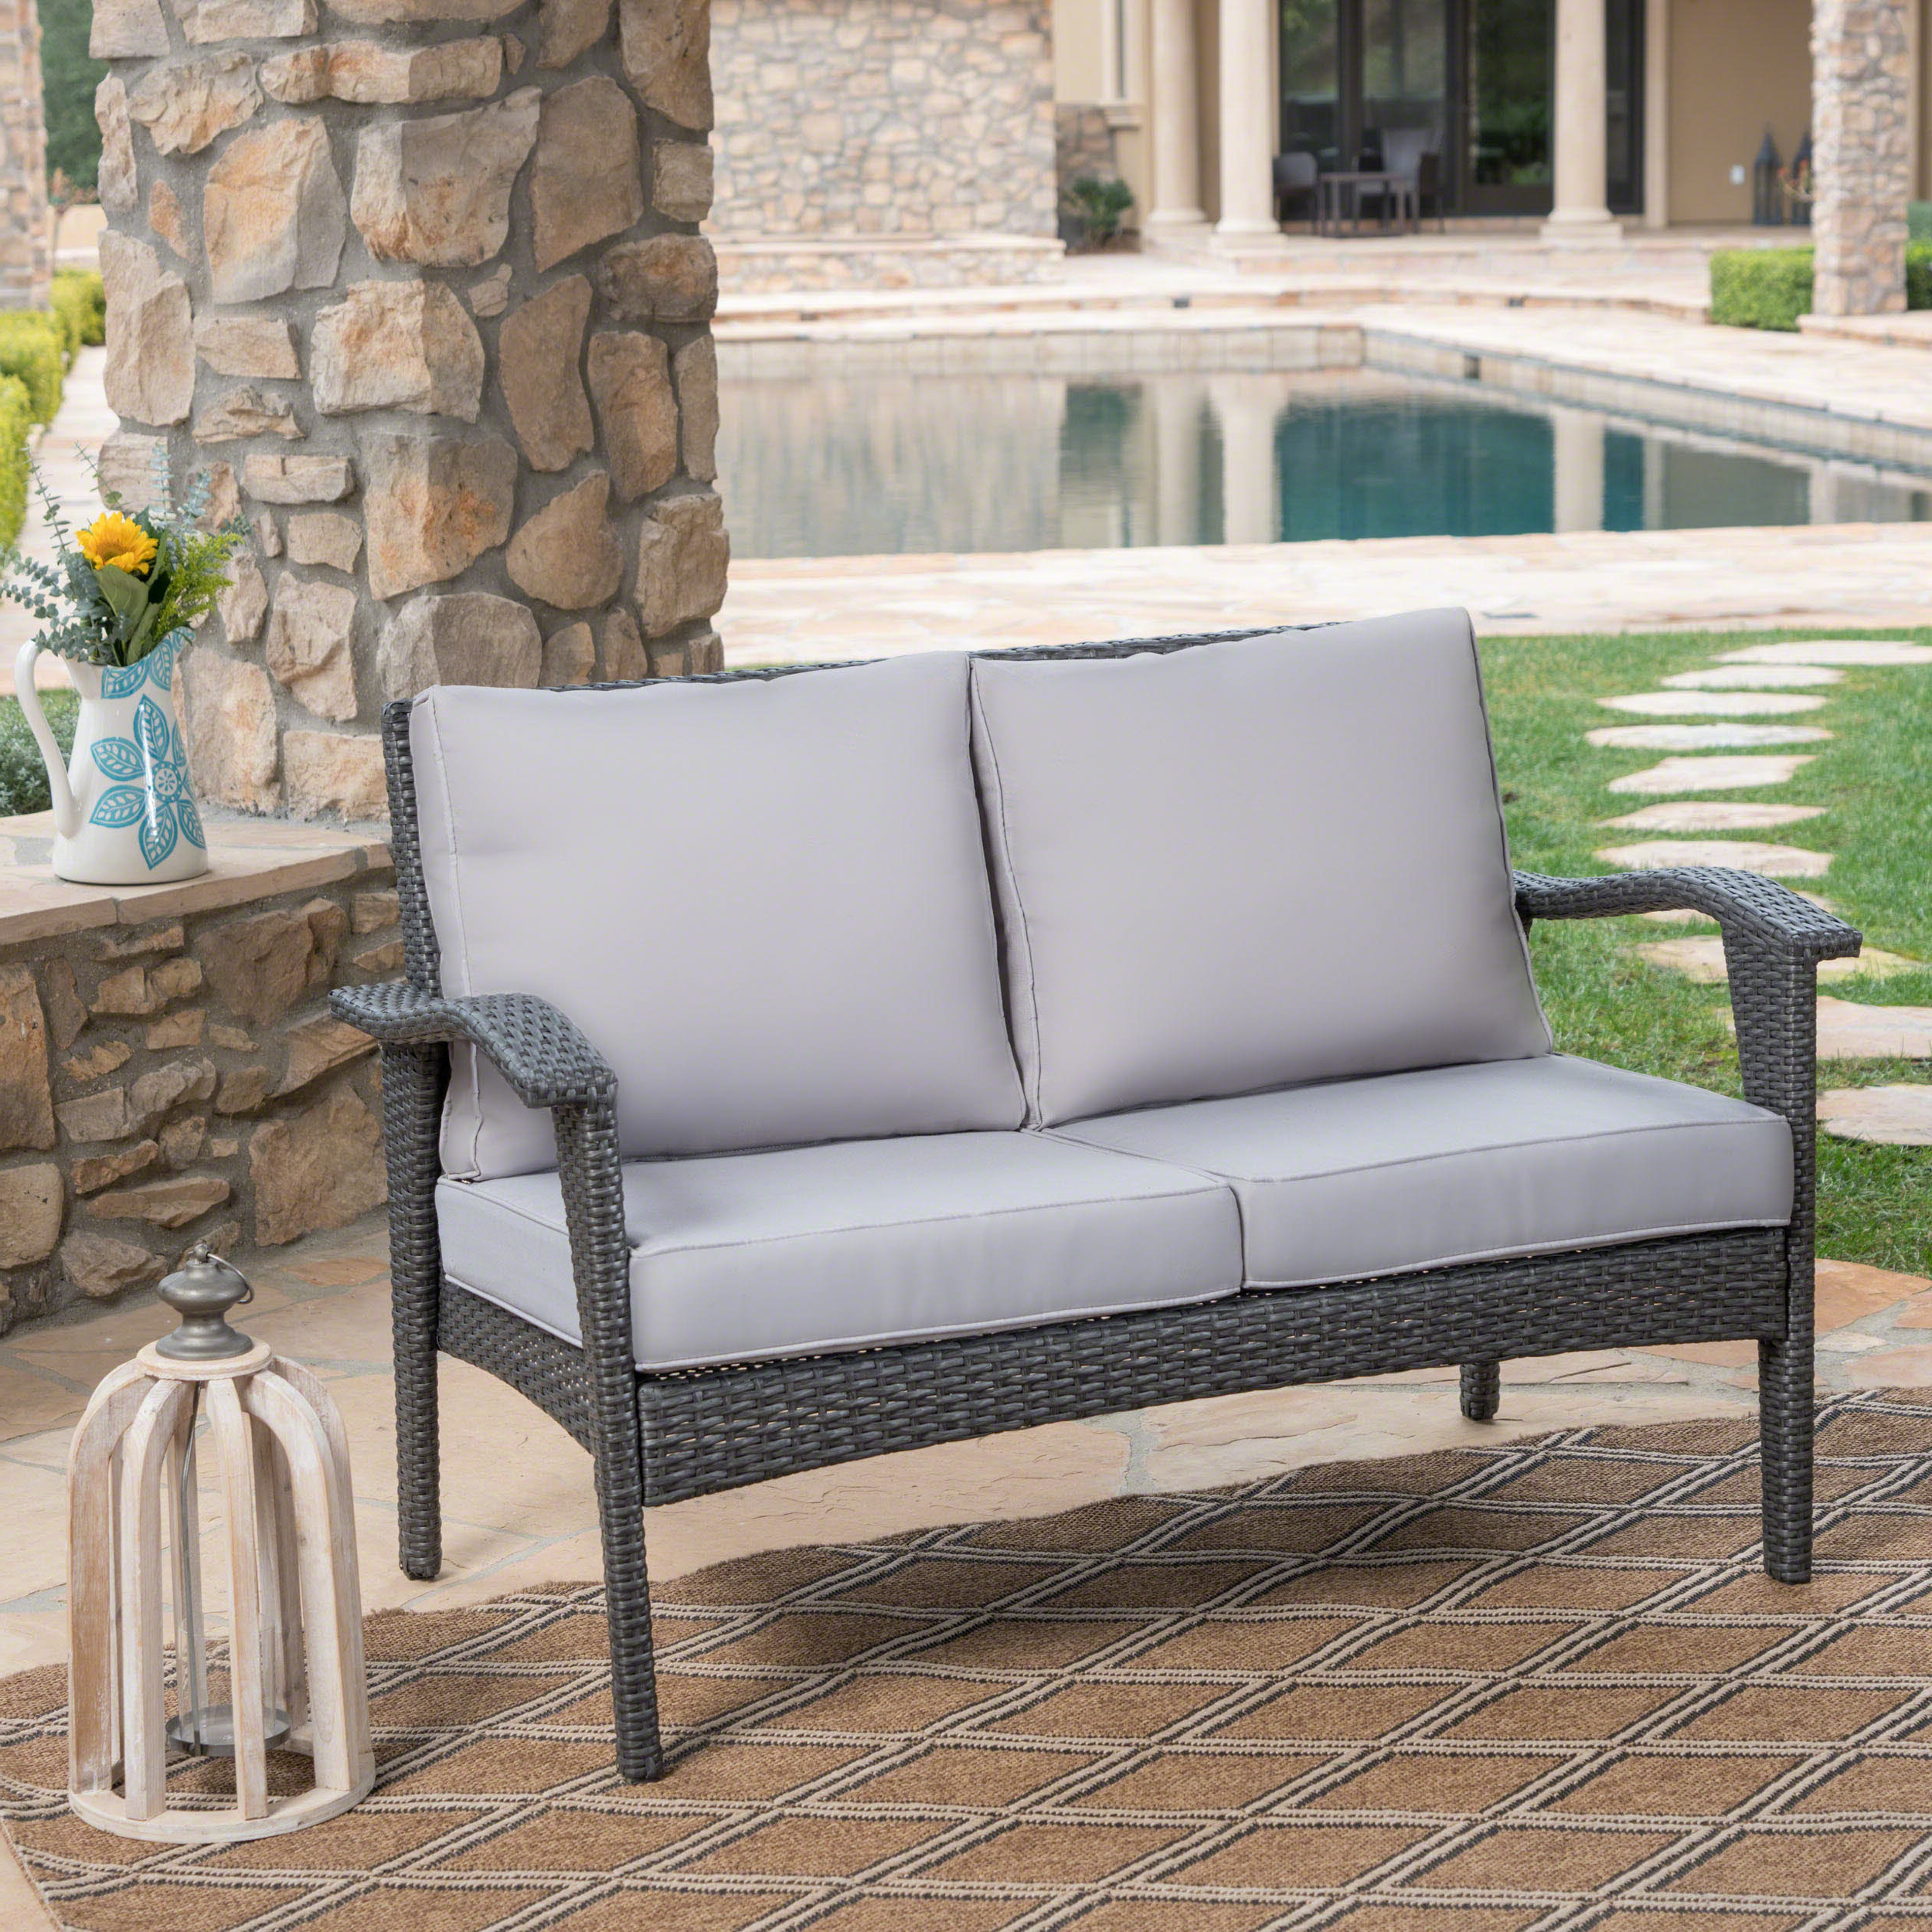 Hagler Outdoor Loveseat With Cushions In Most Recent Mullenax Outdoor Loveseats With Cushions (View 3 of 20)